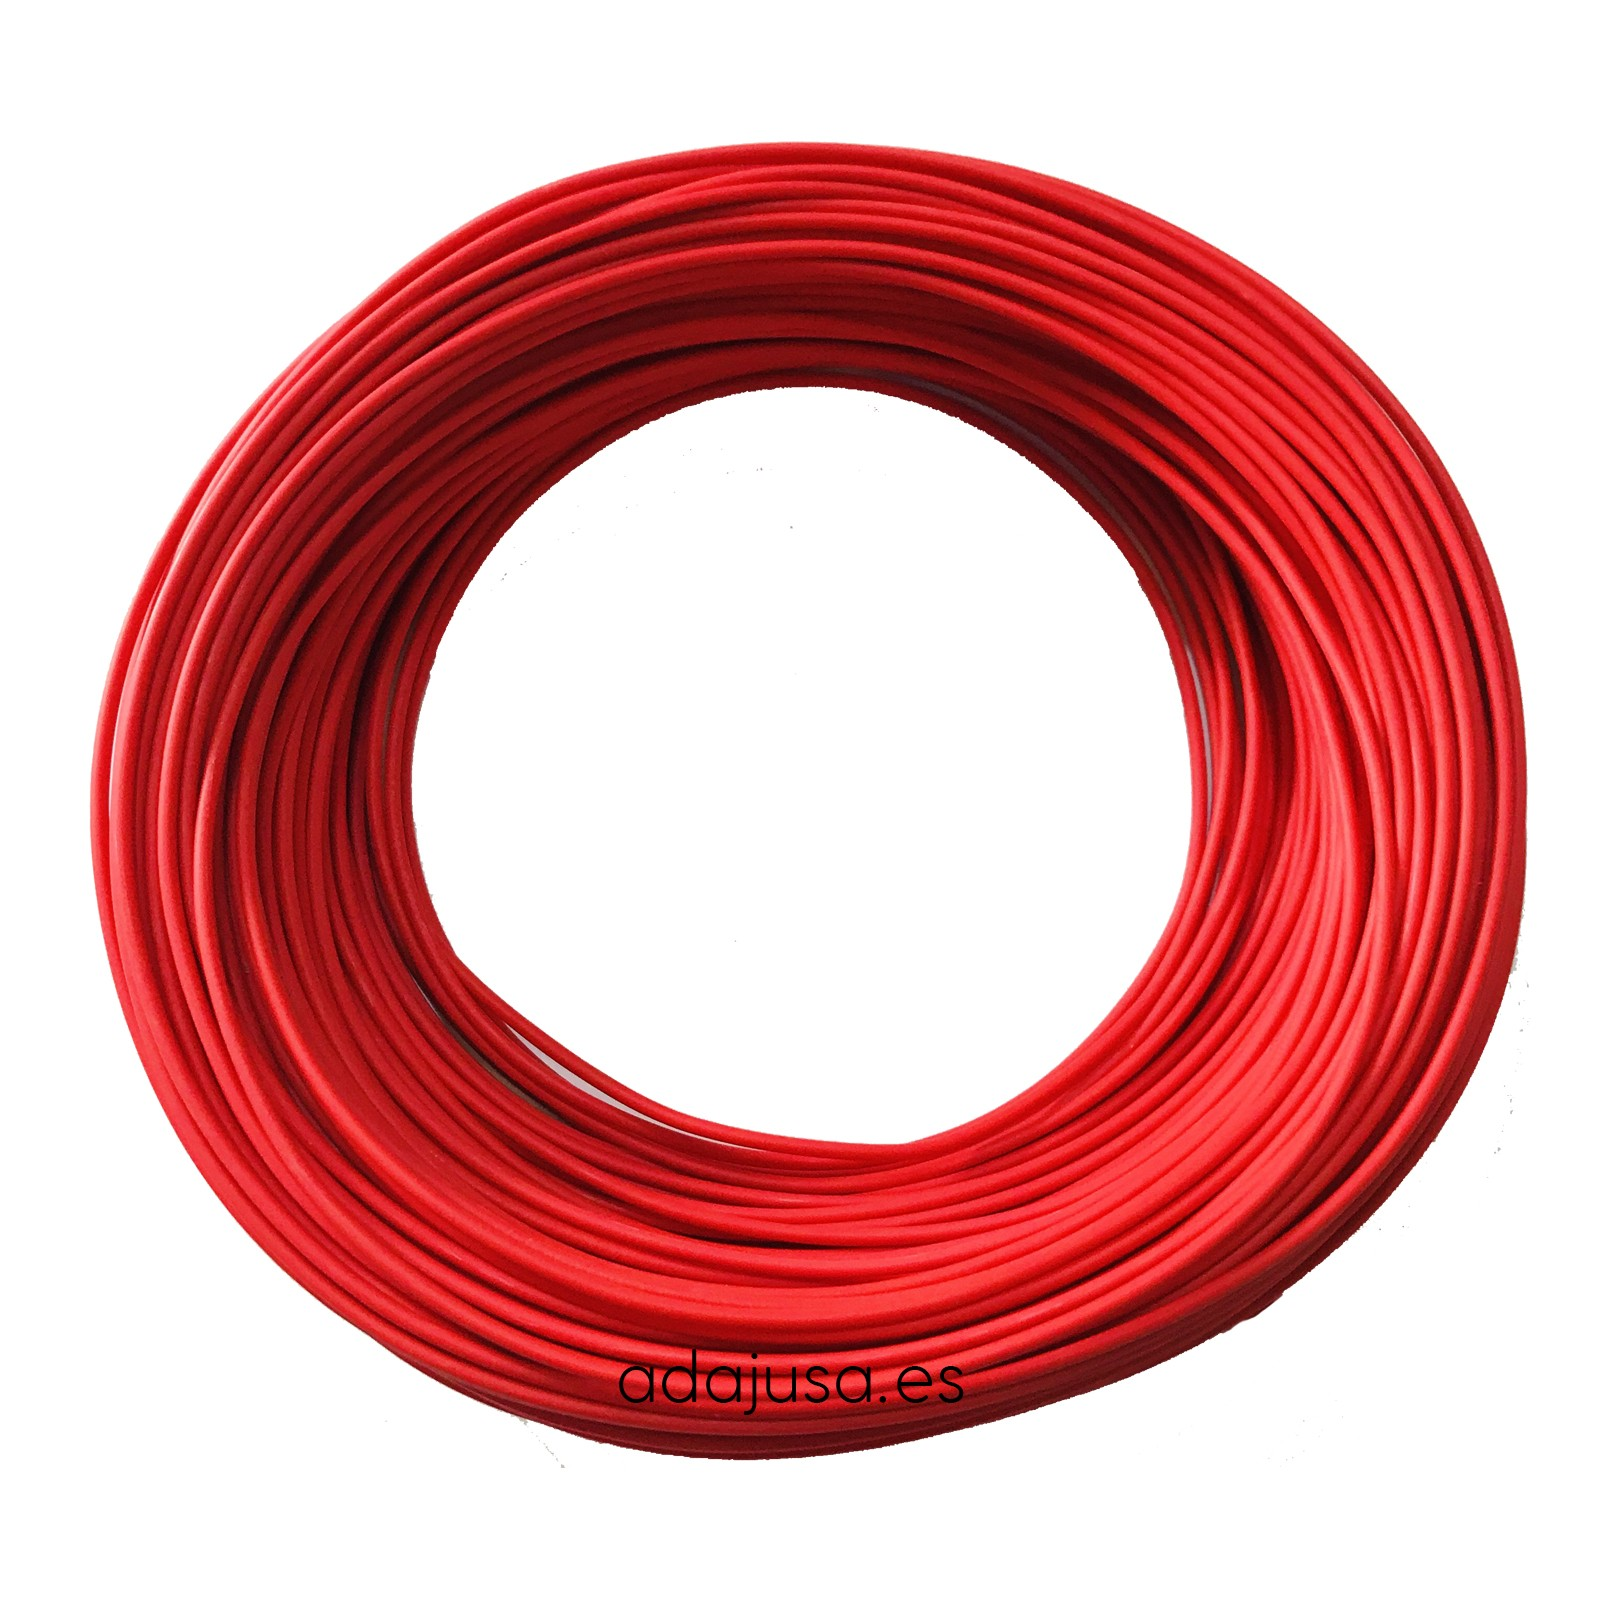 Manguera Libre De Halogenos 3x1 5 Cable Flexible Unipolar 1 5 Mm2 Color Rojo